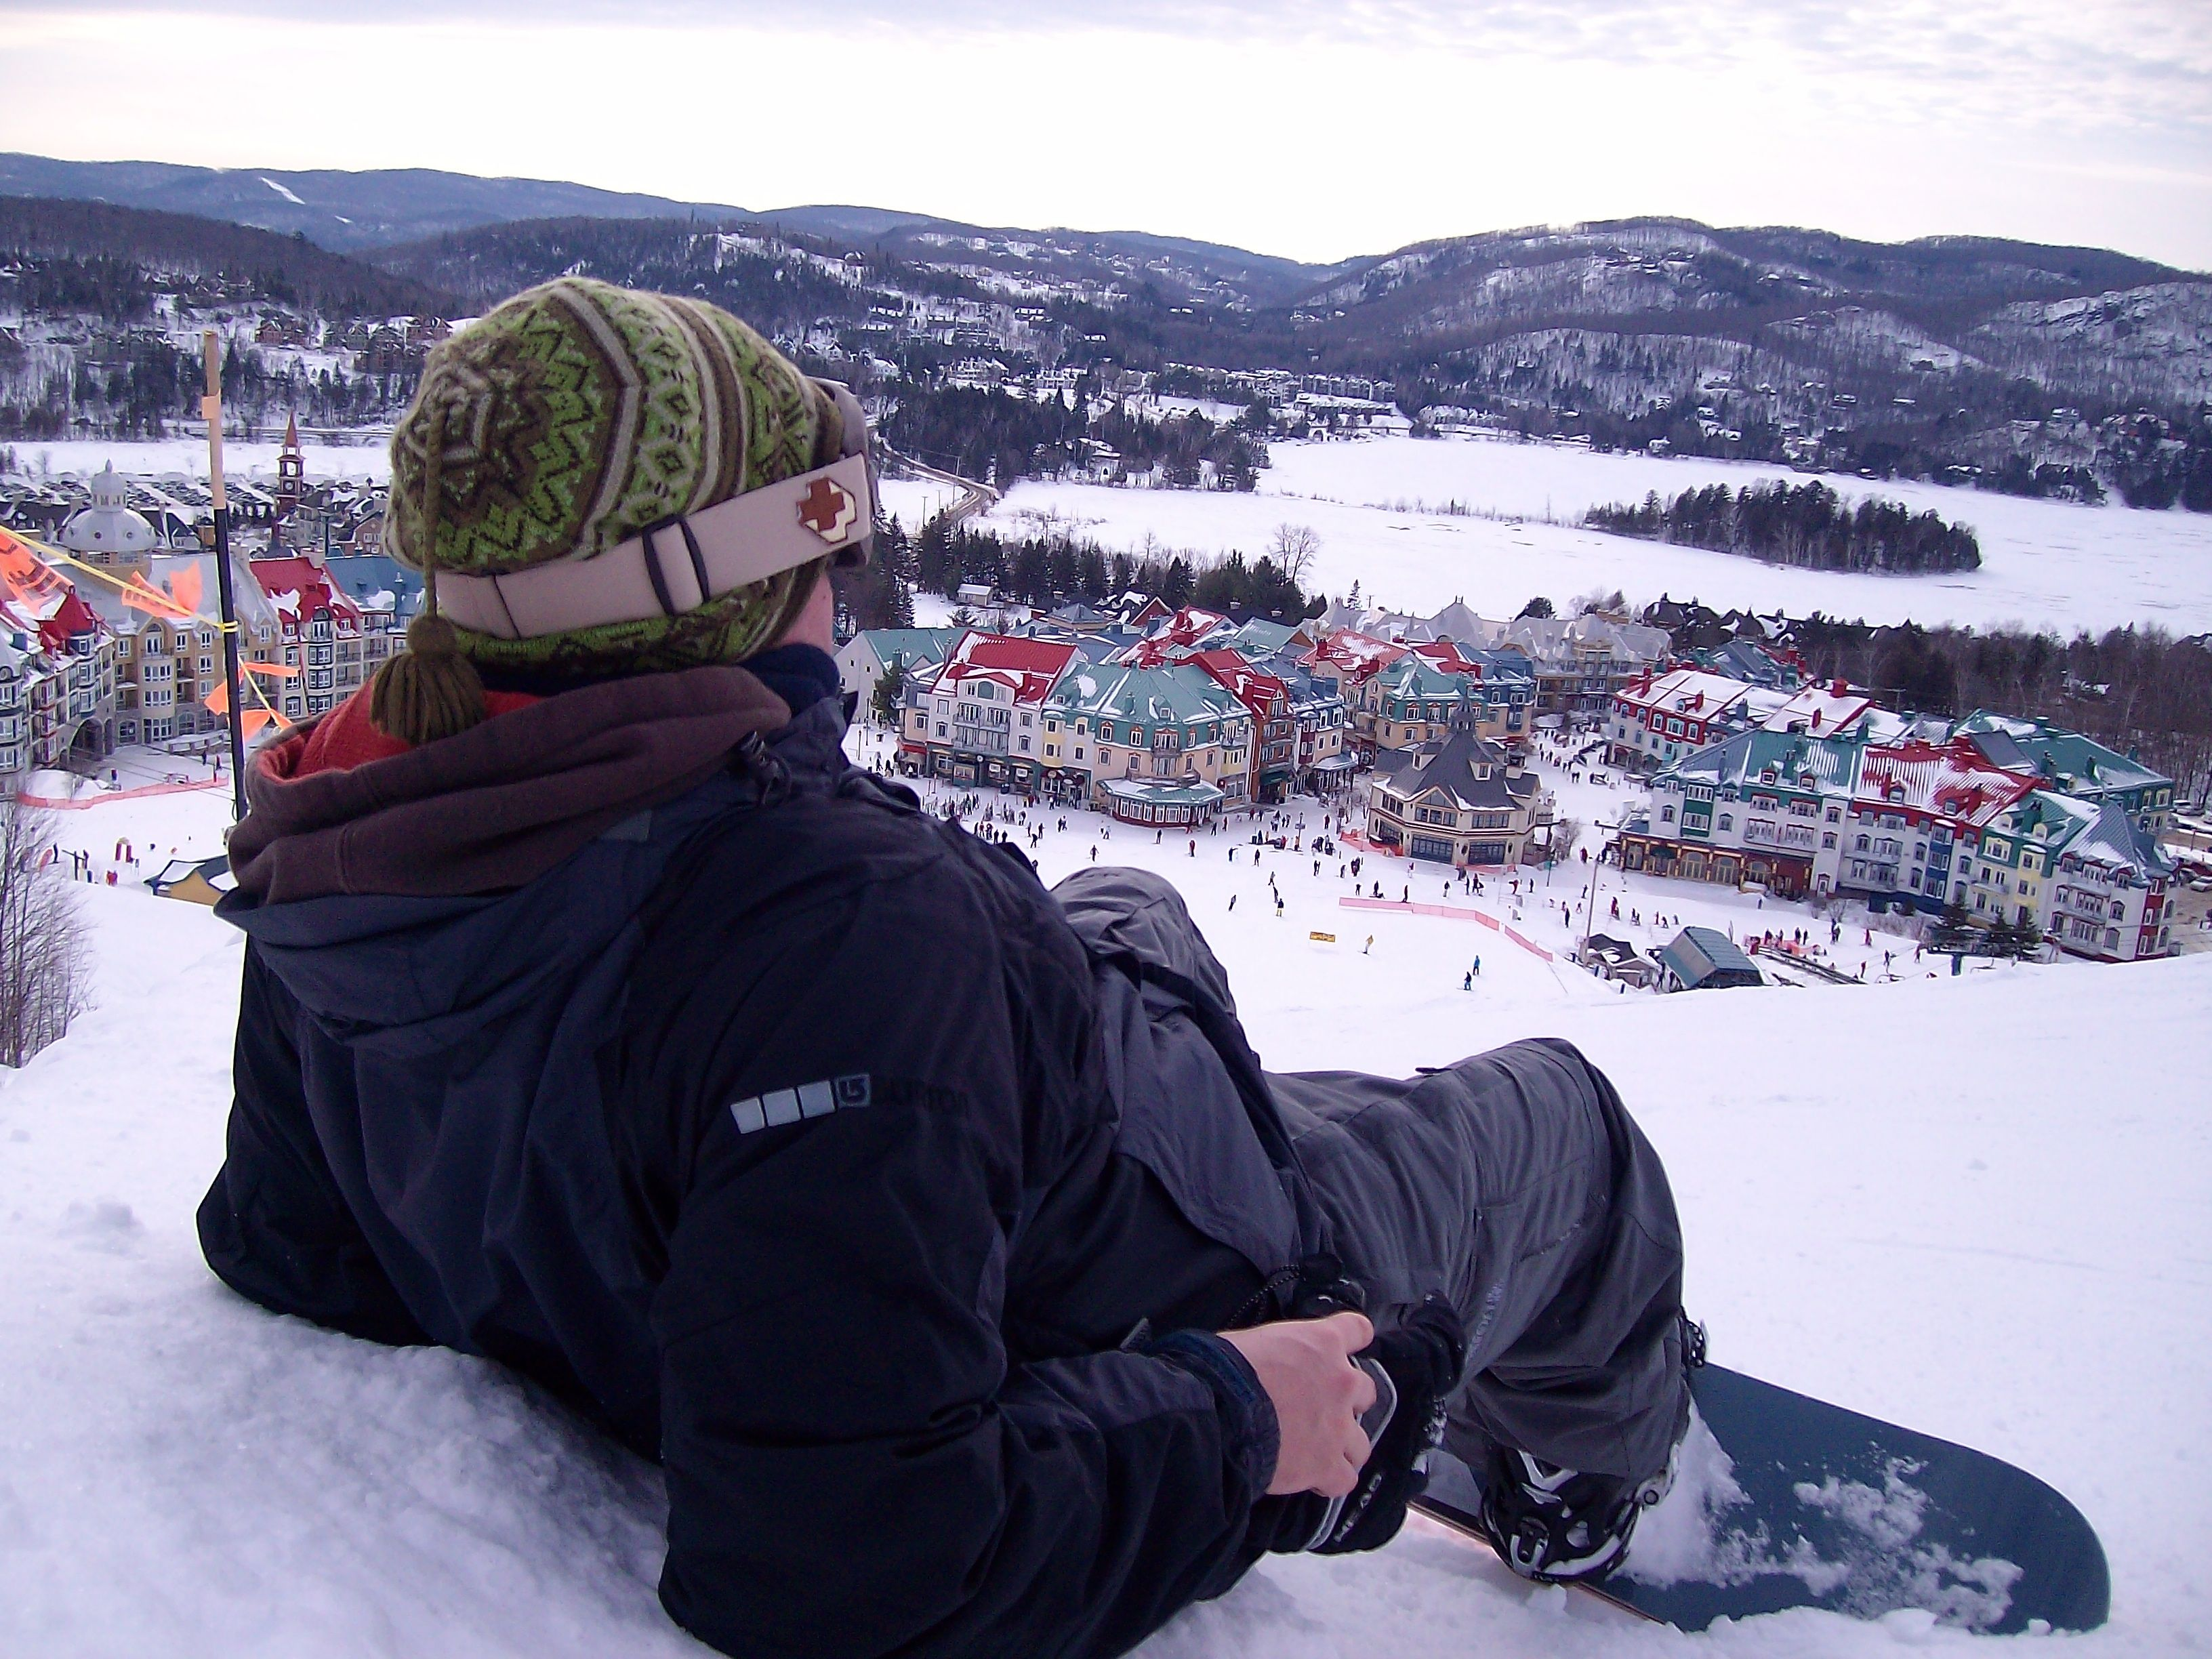 Winter-Activities-Canada-Snowboarding